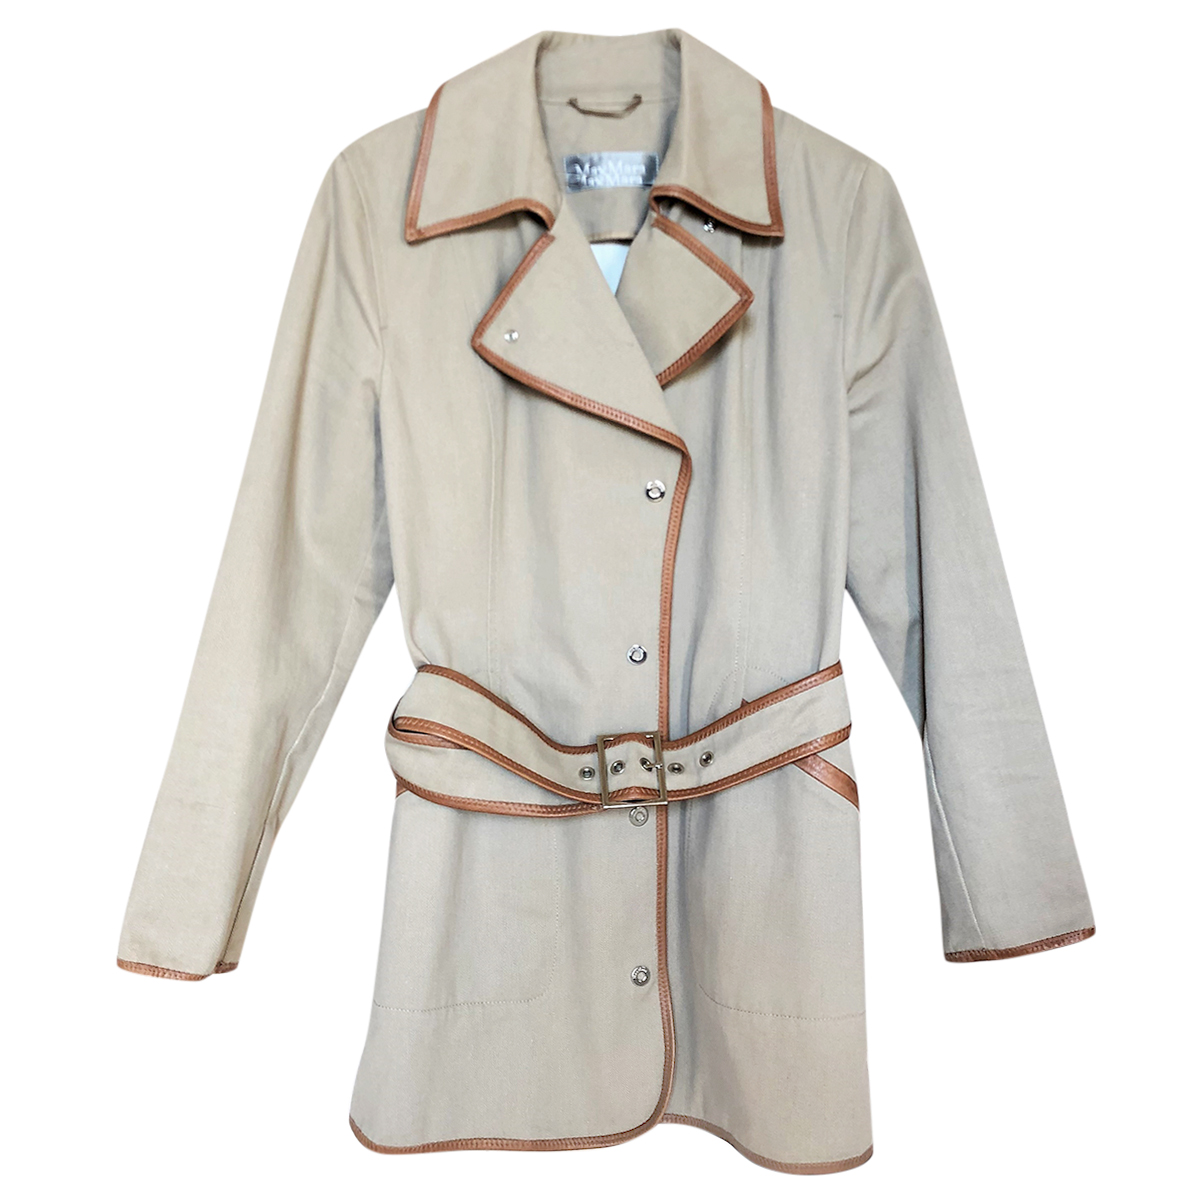 Max Mara Beige Belted Trench Coat W/ Leather Trim